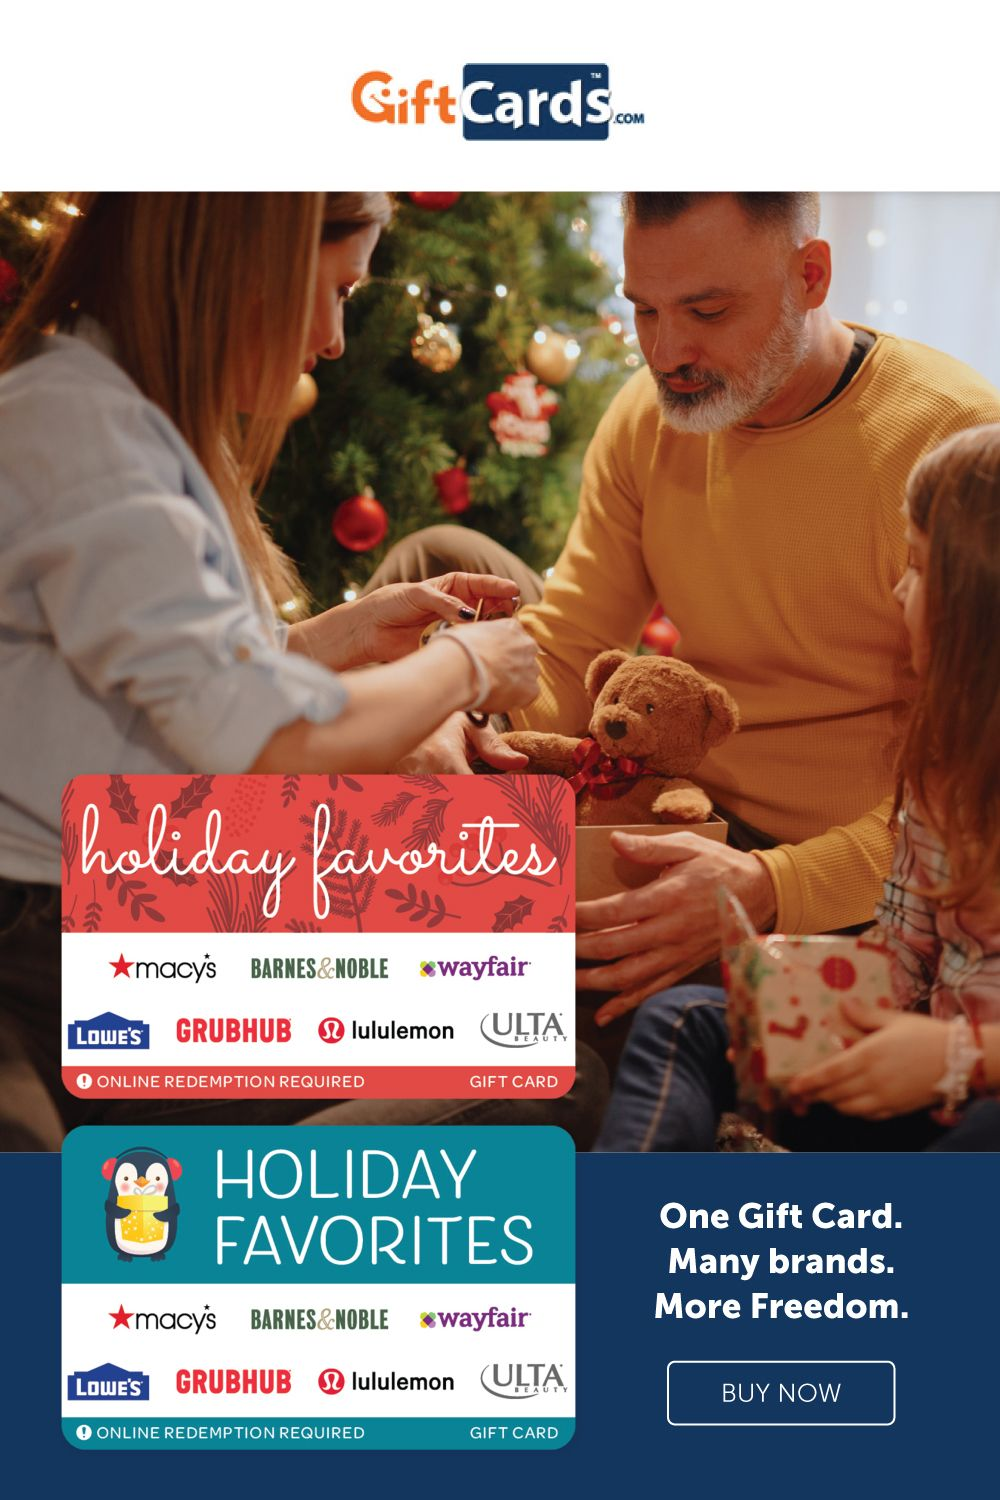 Holiday Favorites Gift Cards Giftcards Com Favorite Things Gift Favorite Holiday Gifts For New Parents